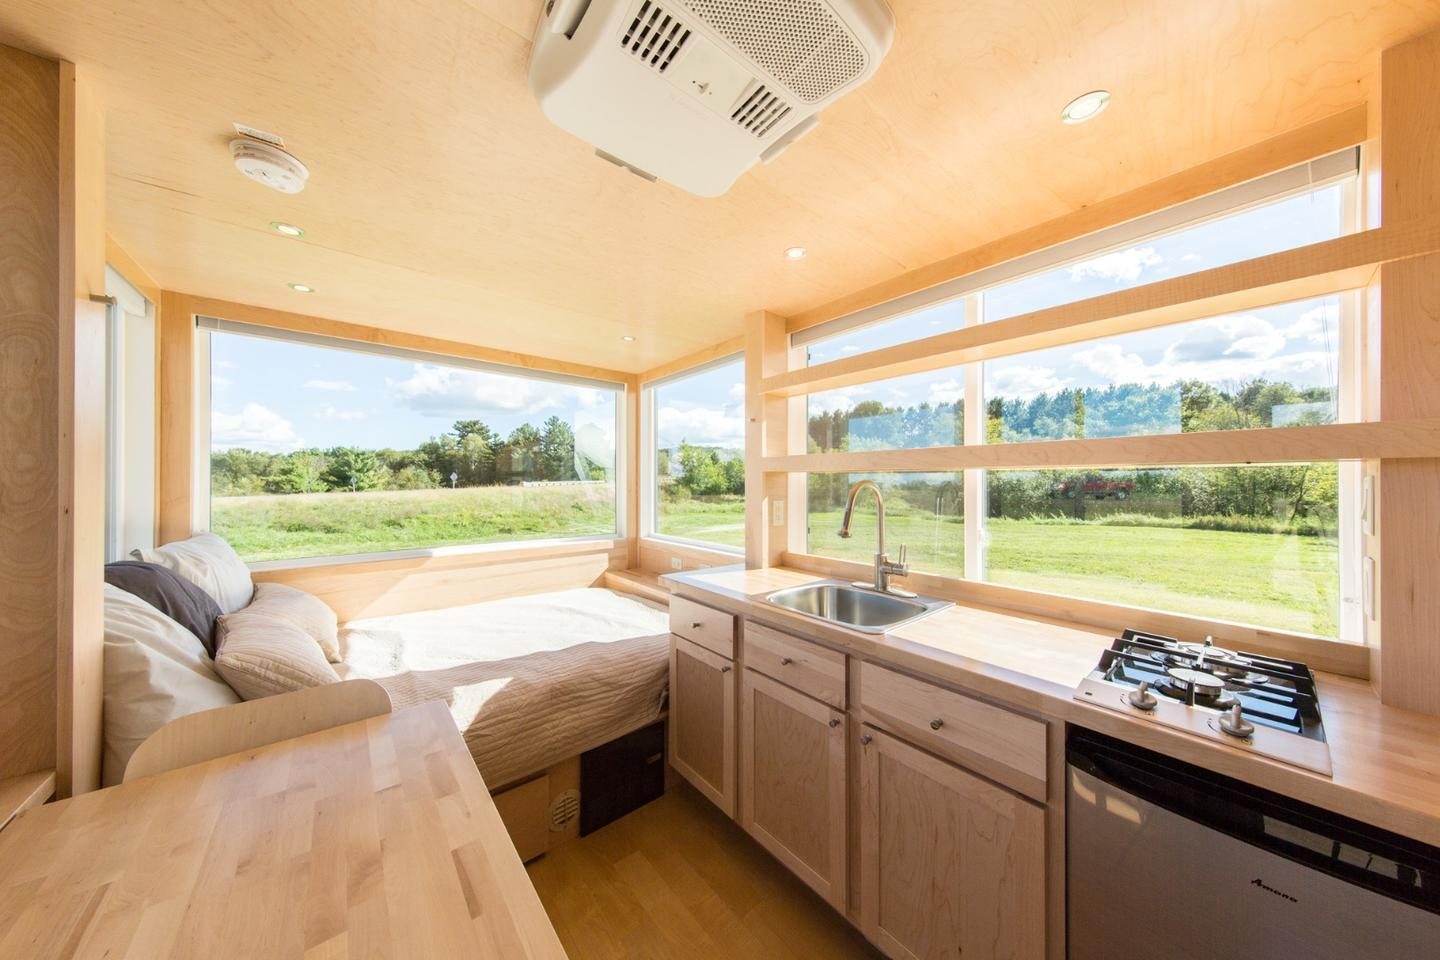 The Vista Go has just 136 sq ft (12.6 sq m) of floorspace